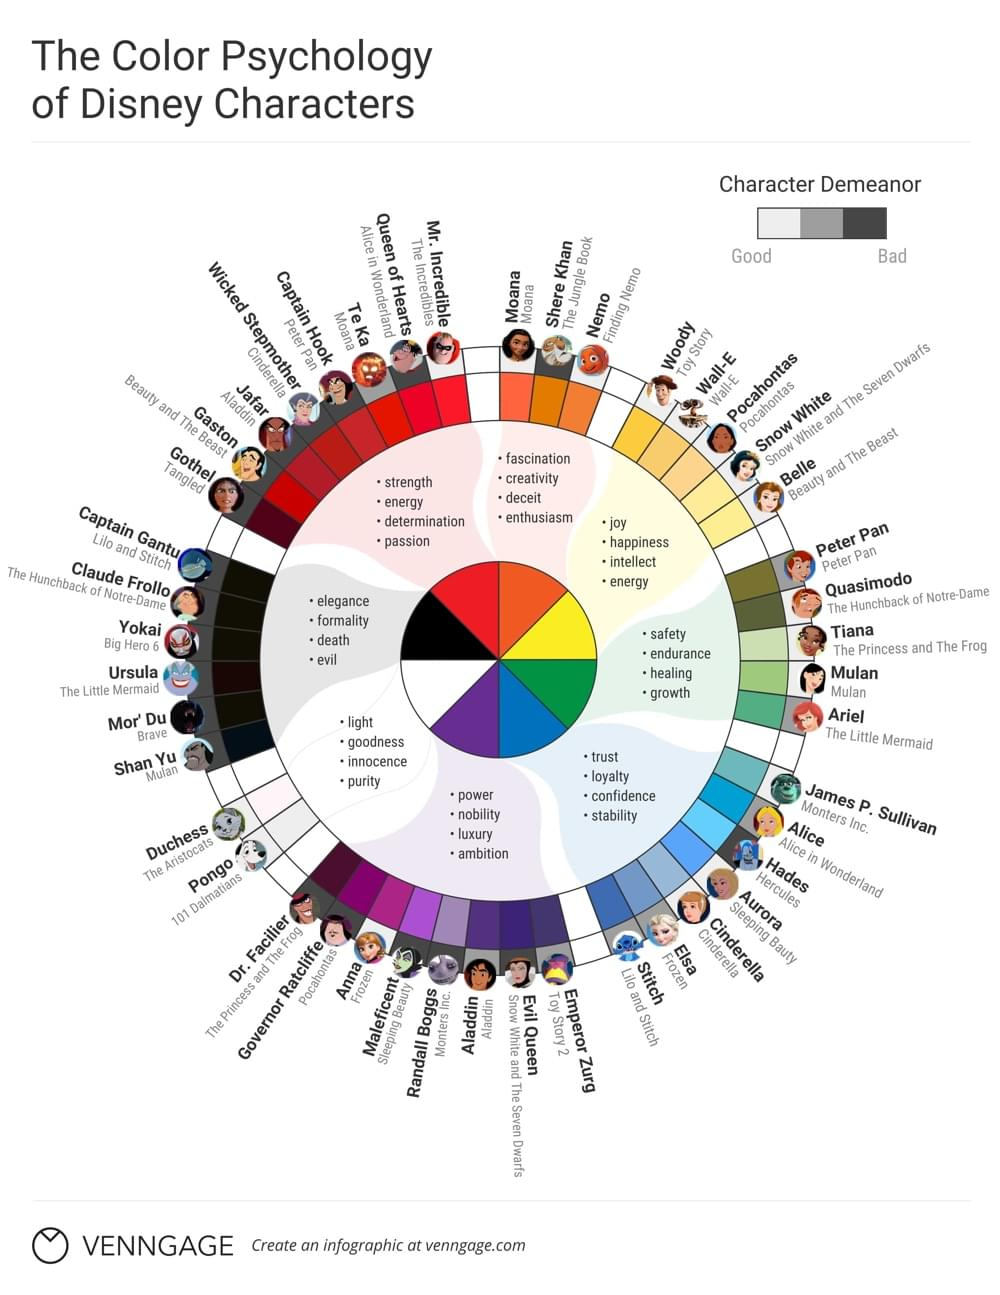 Disney heroes and villains color wheel infographic